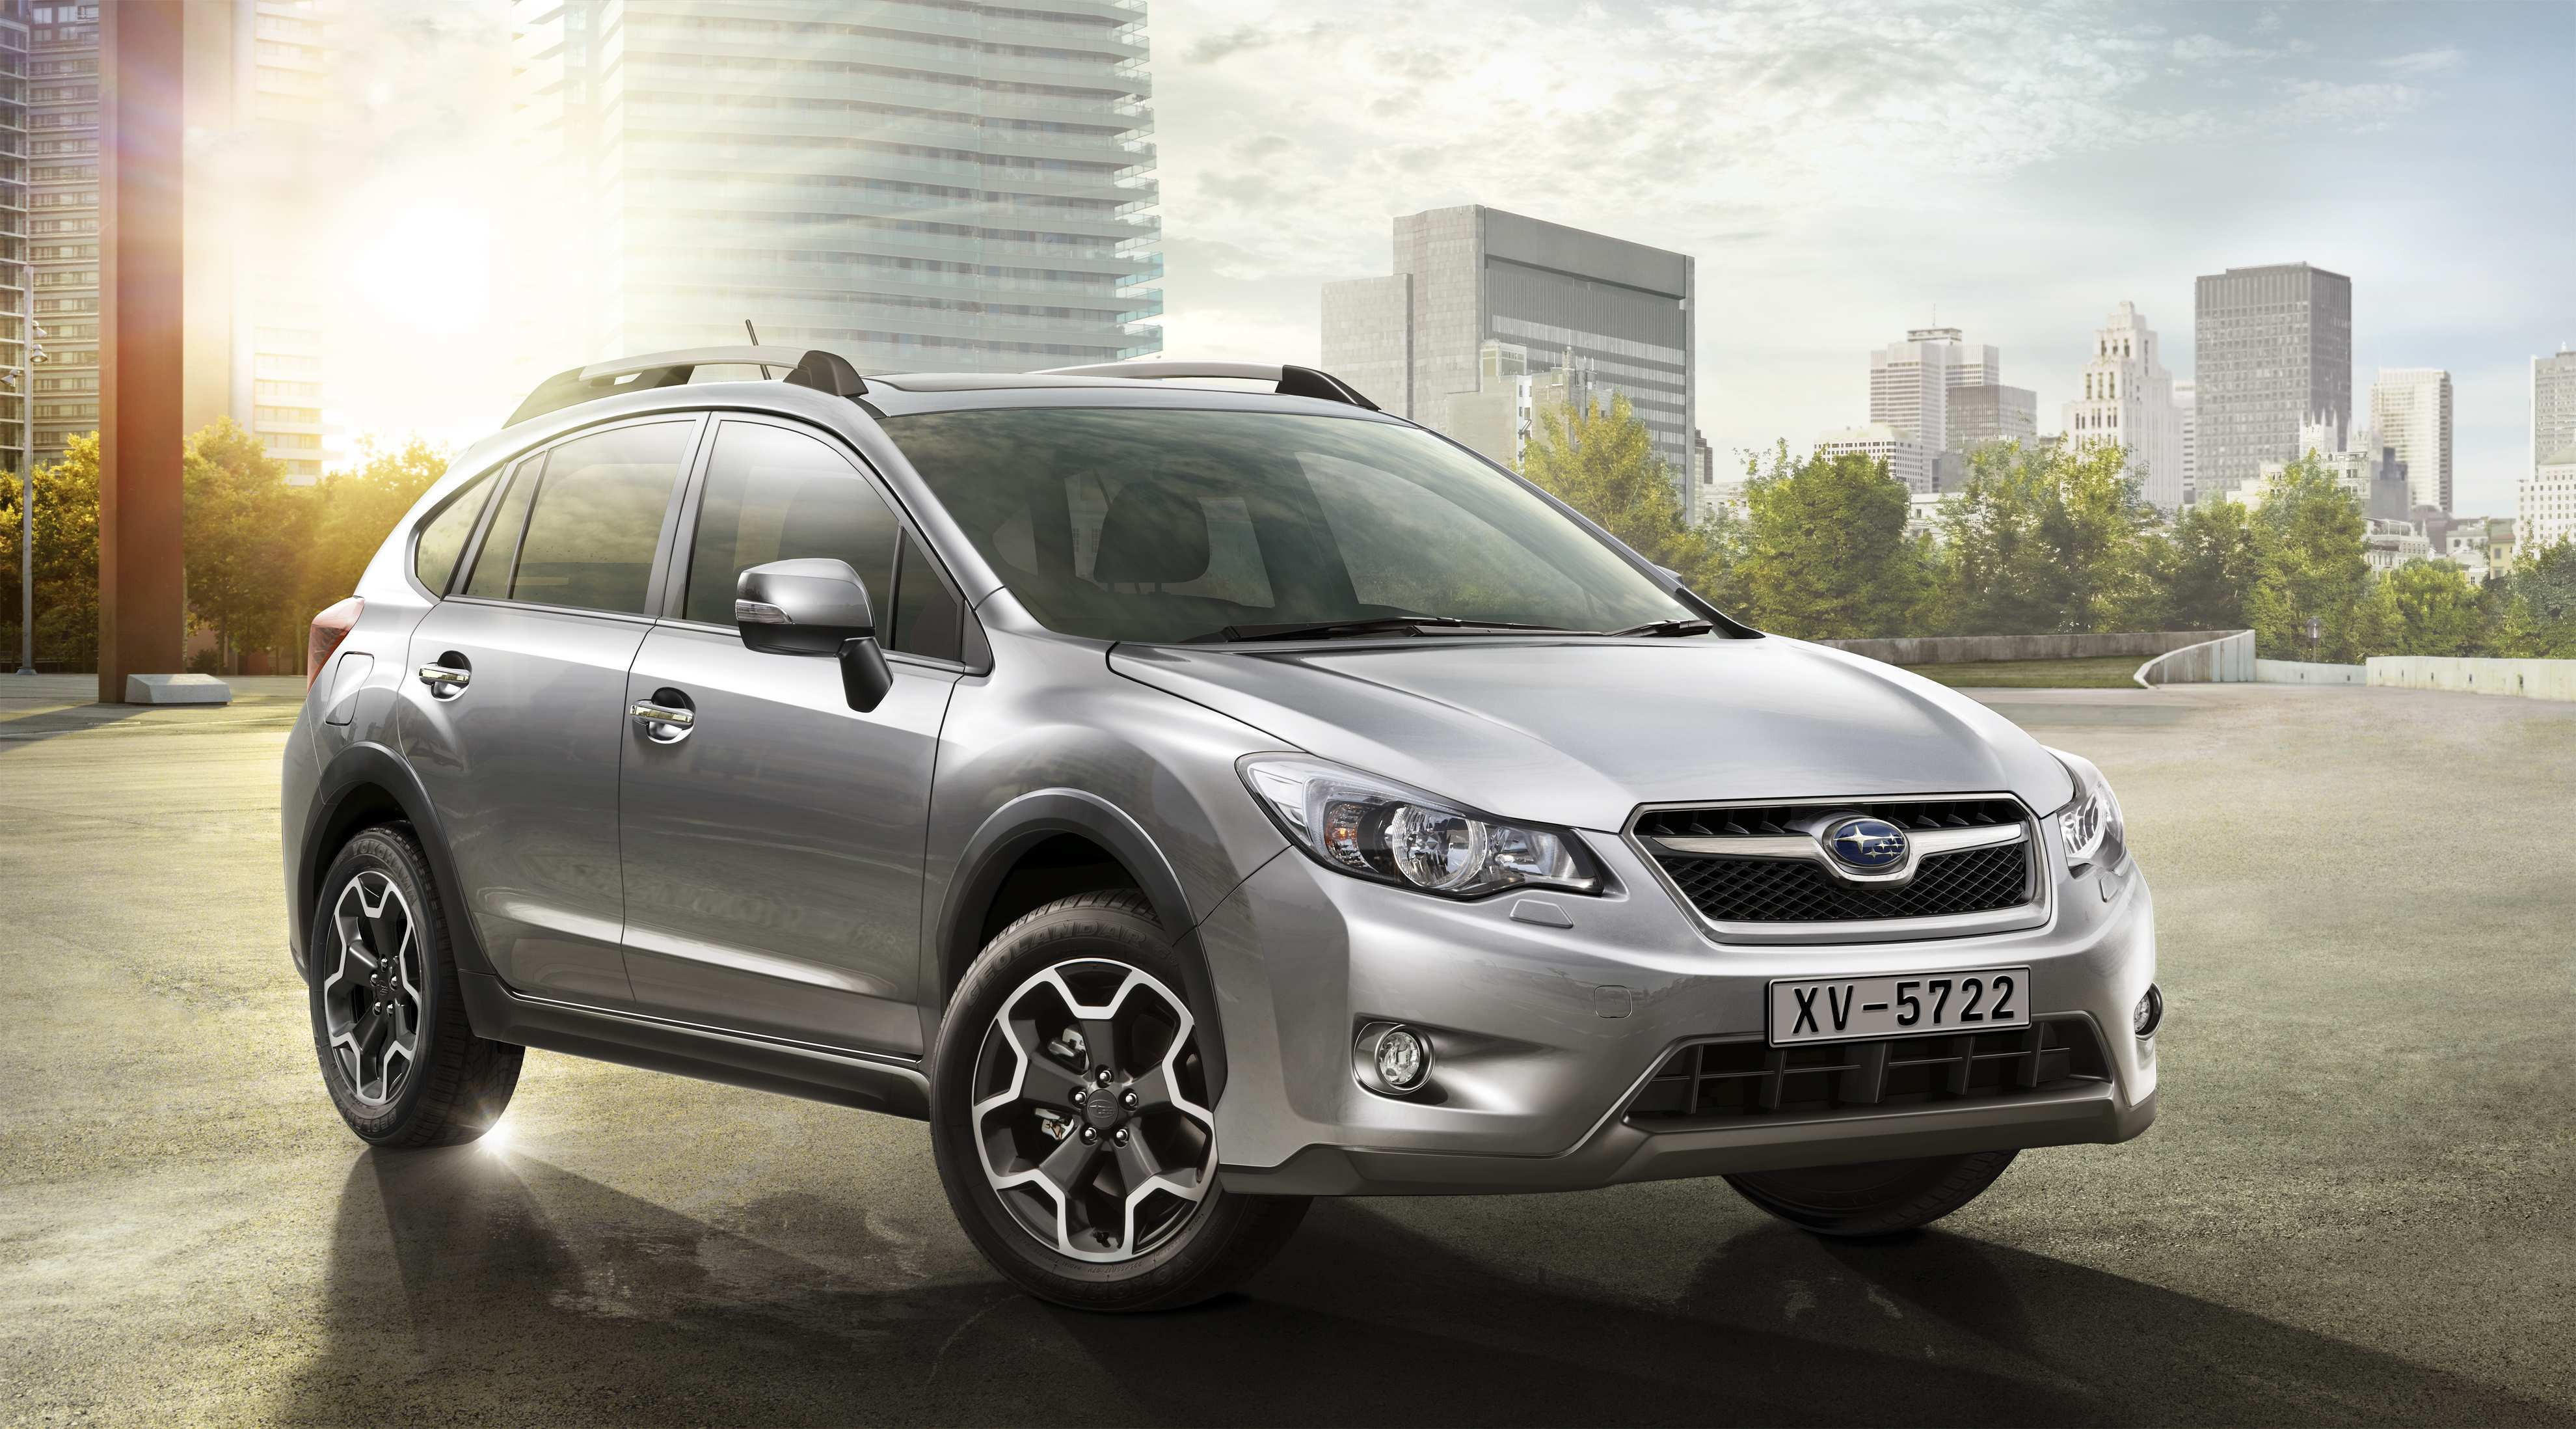 76 The Best Subaru Xv 2020 Egypt First Drive